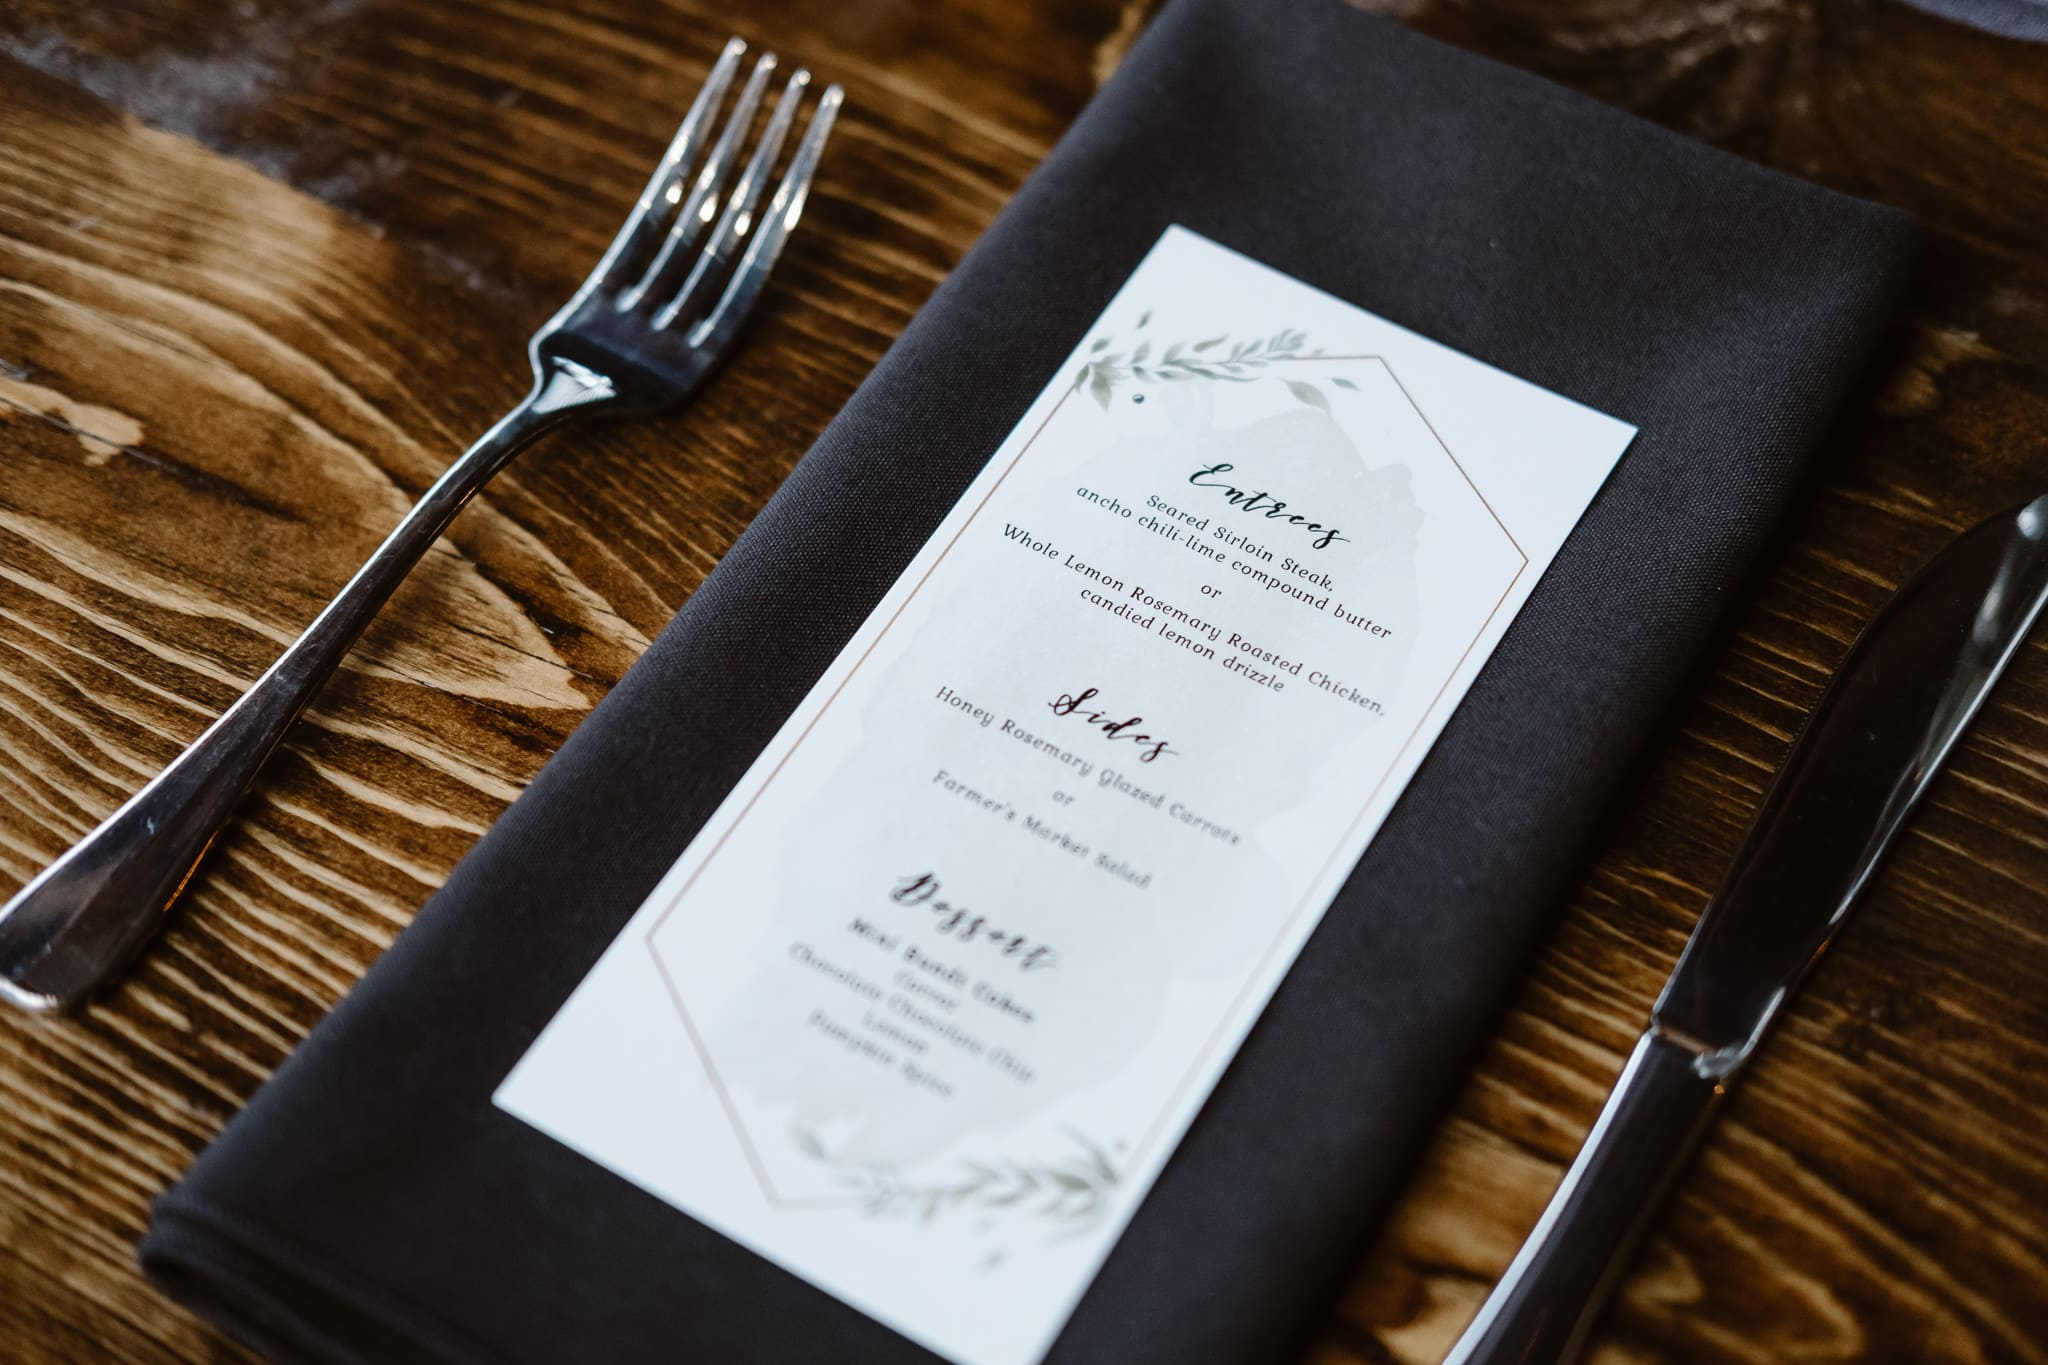 St Vrain Wedding Photographer   Longmont Wedding Photographer   Colorado Winter Wedding Photographer, Colorado industrial chic wedding ceremony, reception decor with navy and dark wood, menu cards, place setting